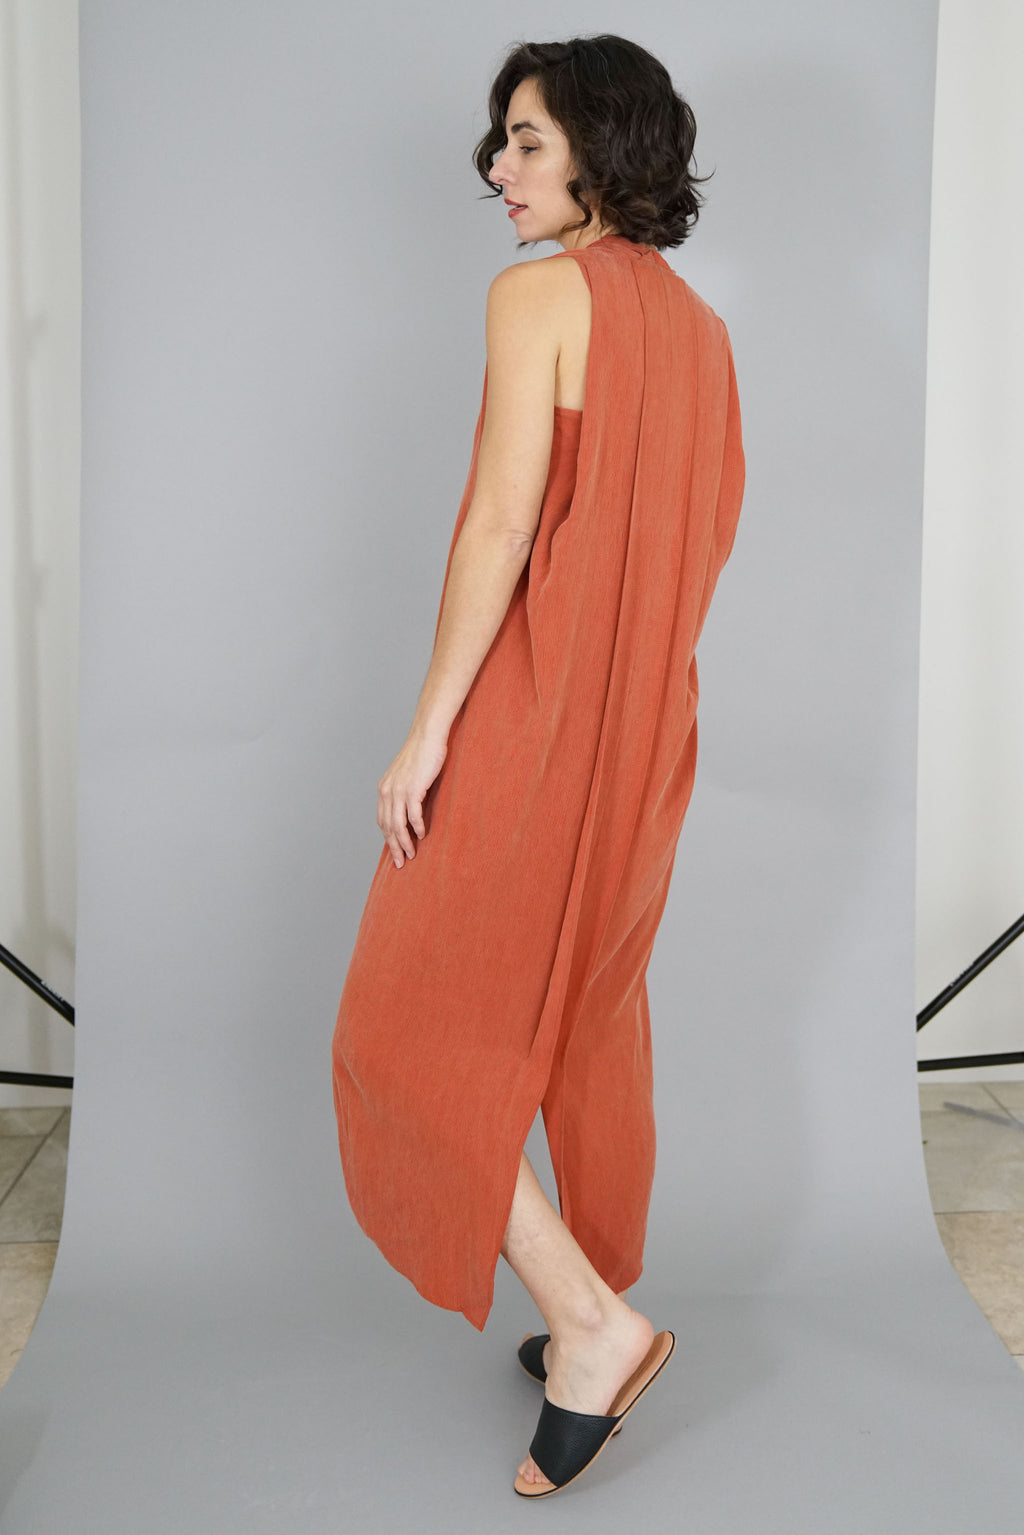 Origami Dress - Coral